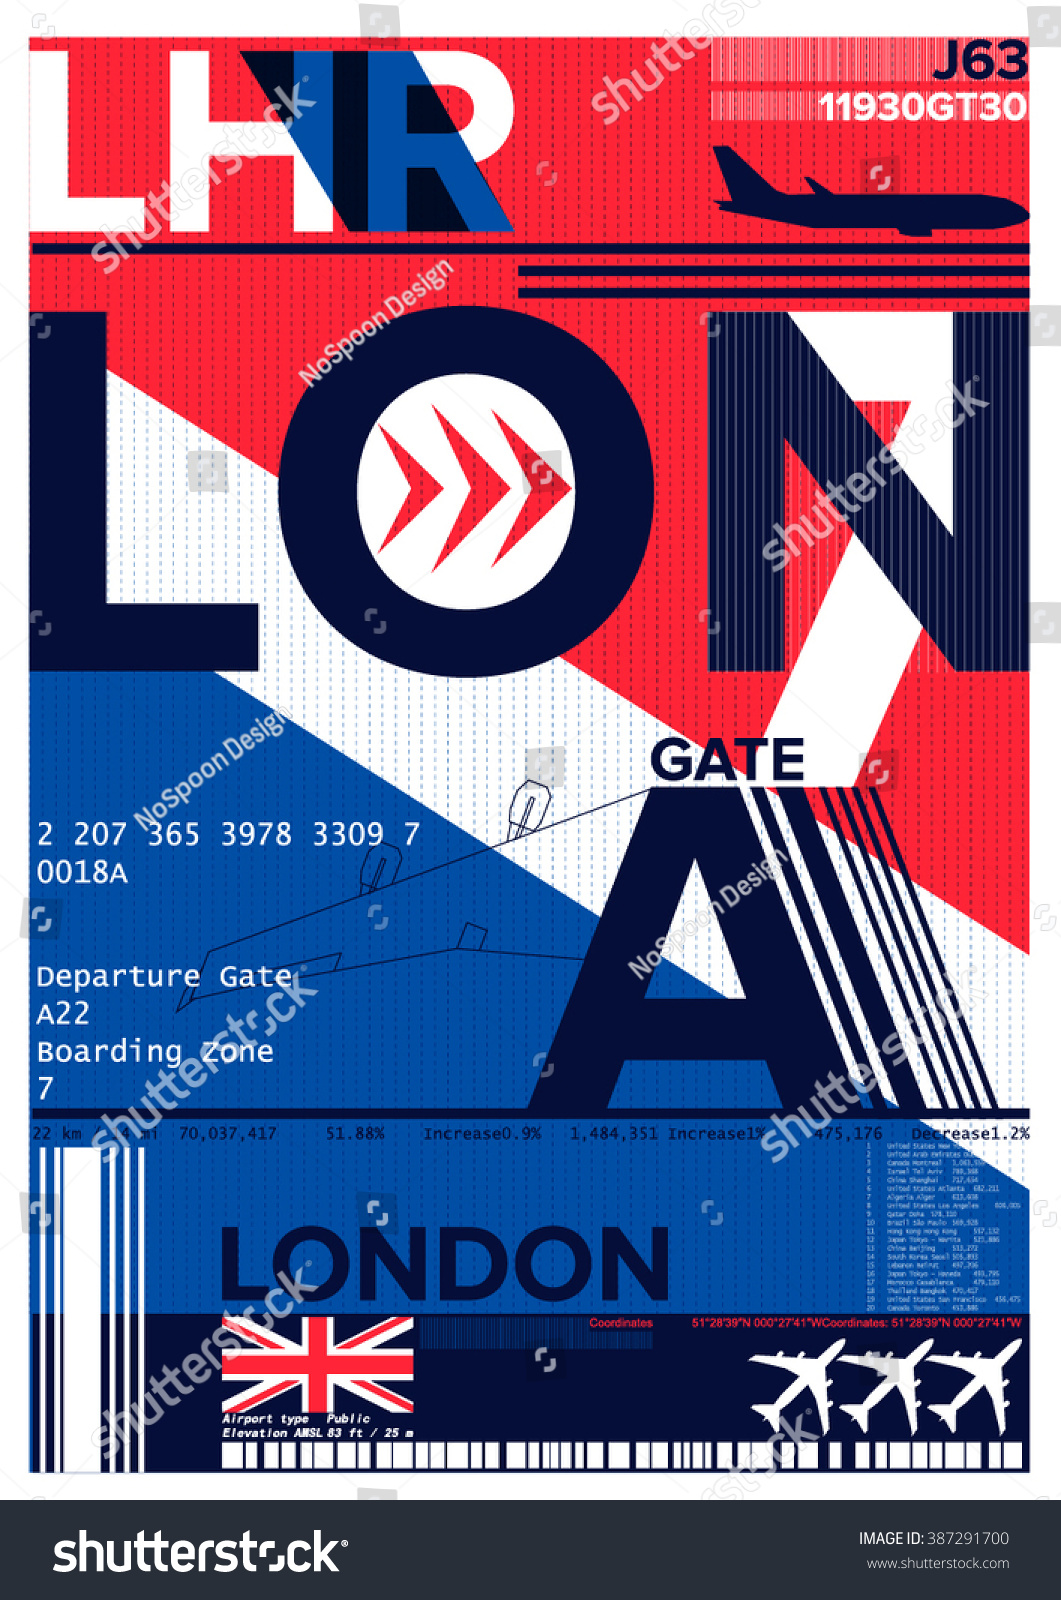 Shirt design london - Airport Departure And Arrival Sign At Heathrow London Stock Vector Illustration T